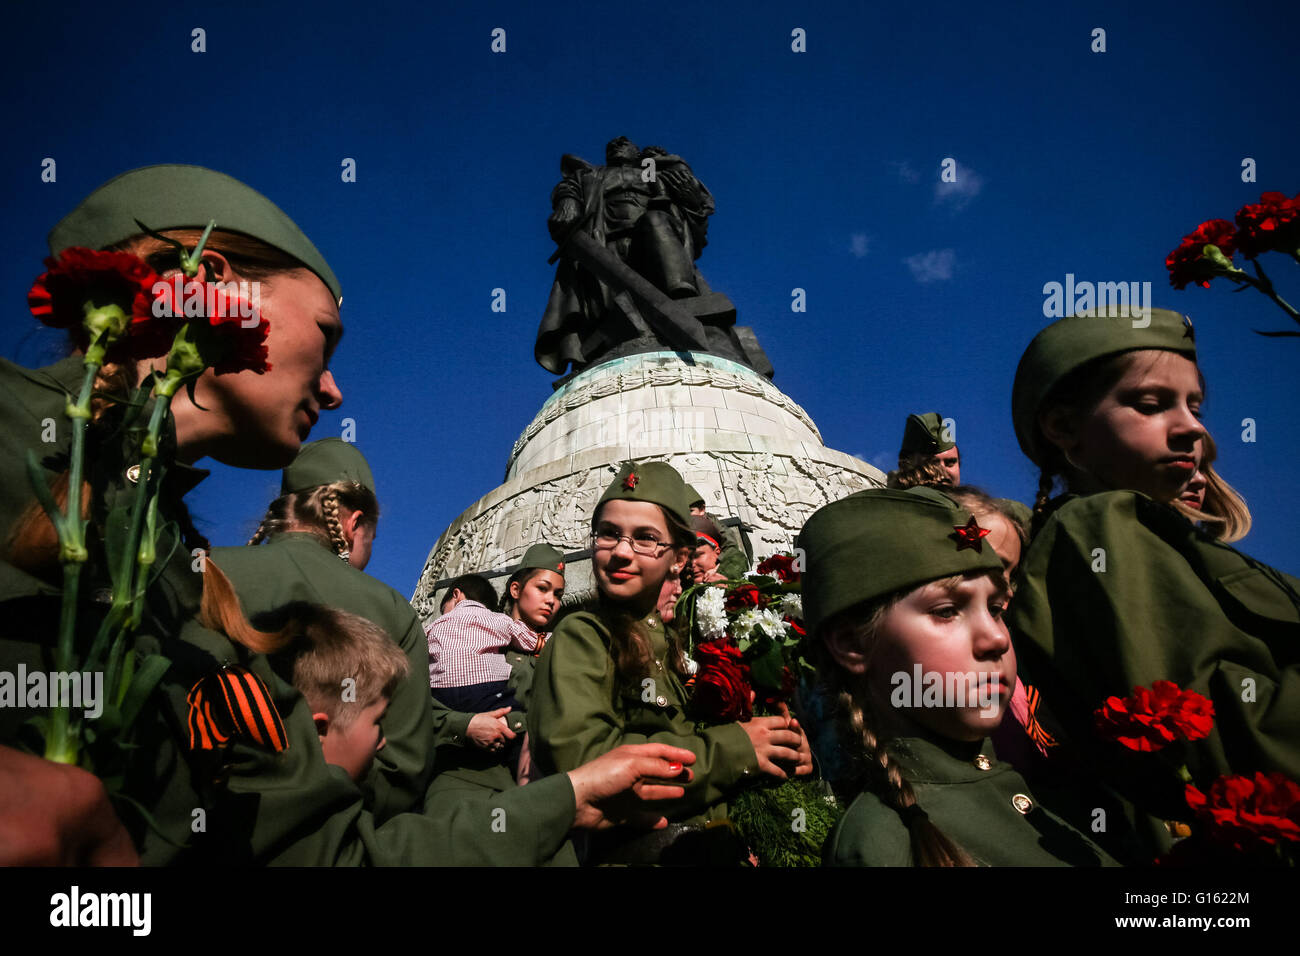 Berlin, Germany. 9th May, 2016. People wearing Soviet army uniforms and holding flowers gather in front of a Soviet Stock Photo